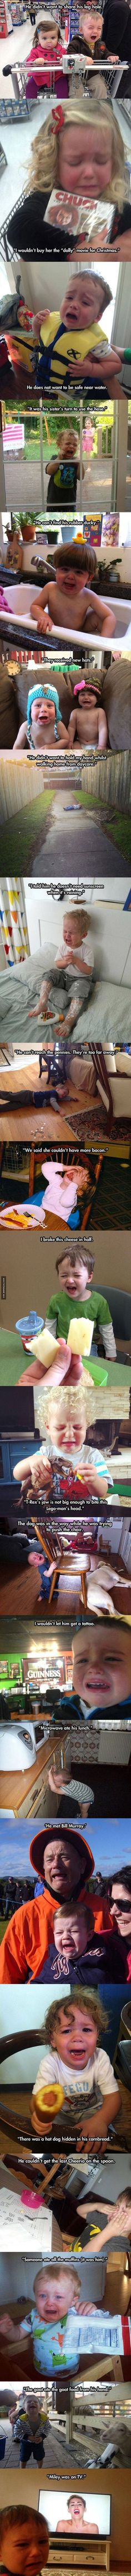 The Reasons Why These Kids Cry Are Hilarious - The Best Funny Pictures